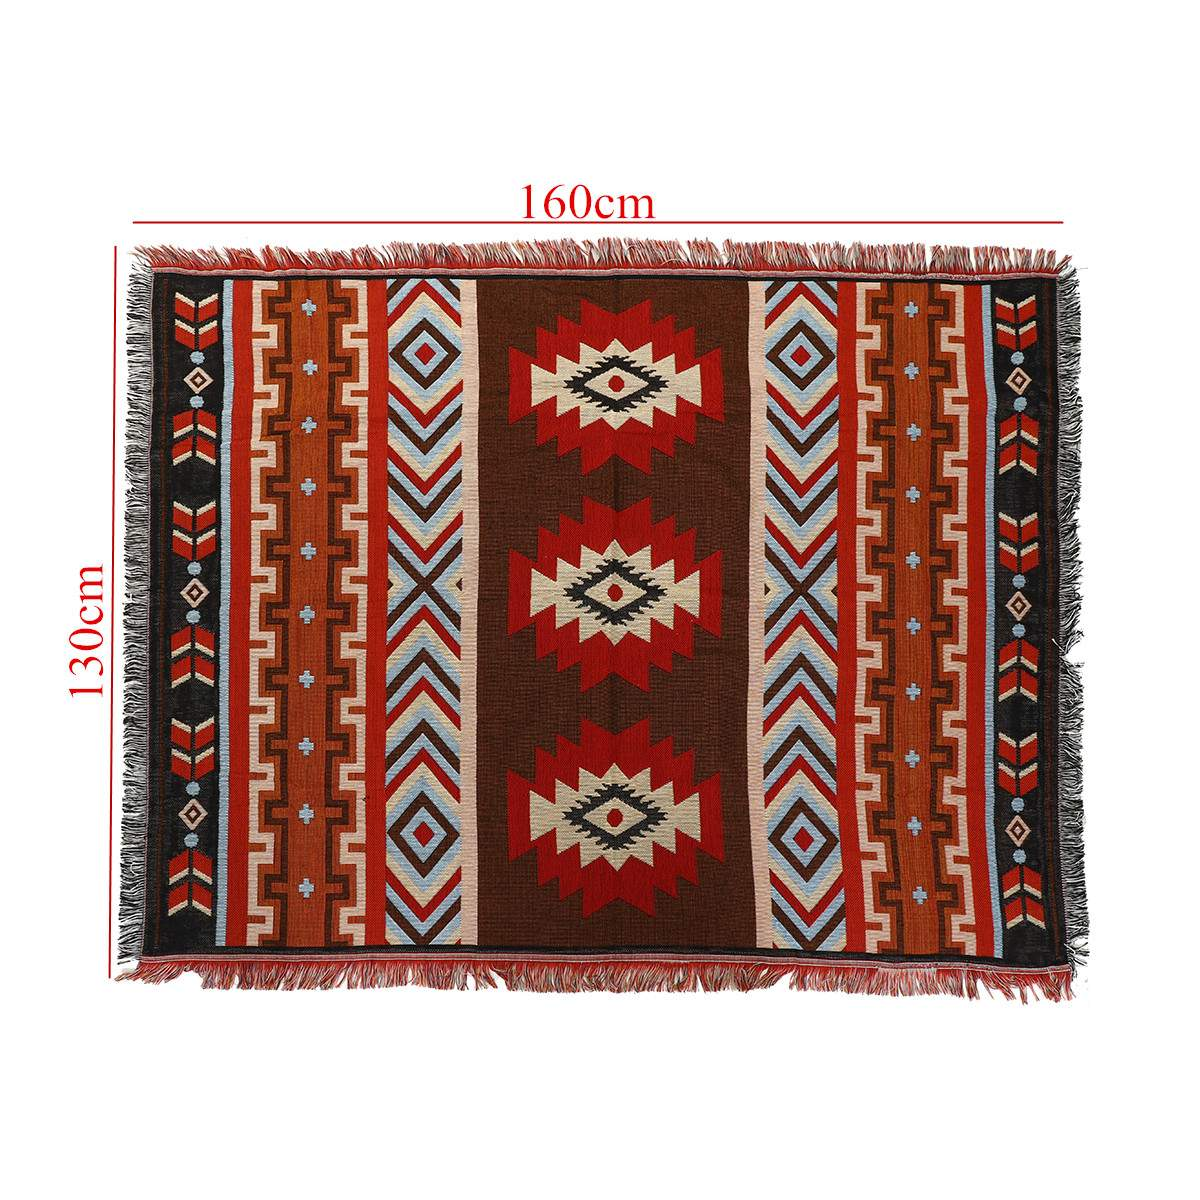 130x160cm Aztec Navajo Throw Blanket Mat Wall Hanging Cotton Rug Mat Towel Woven Geometric Textiles Bedding Home Decoration